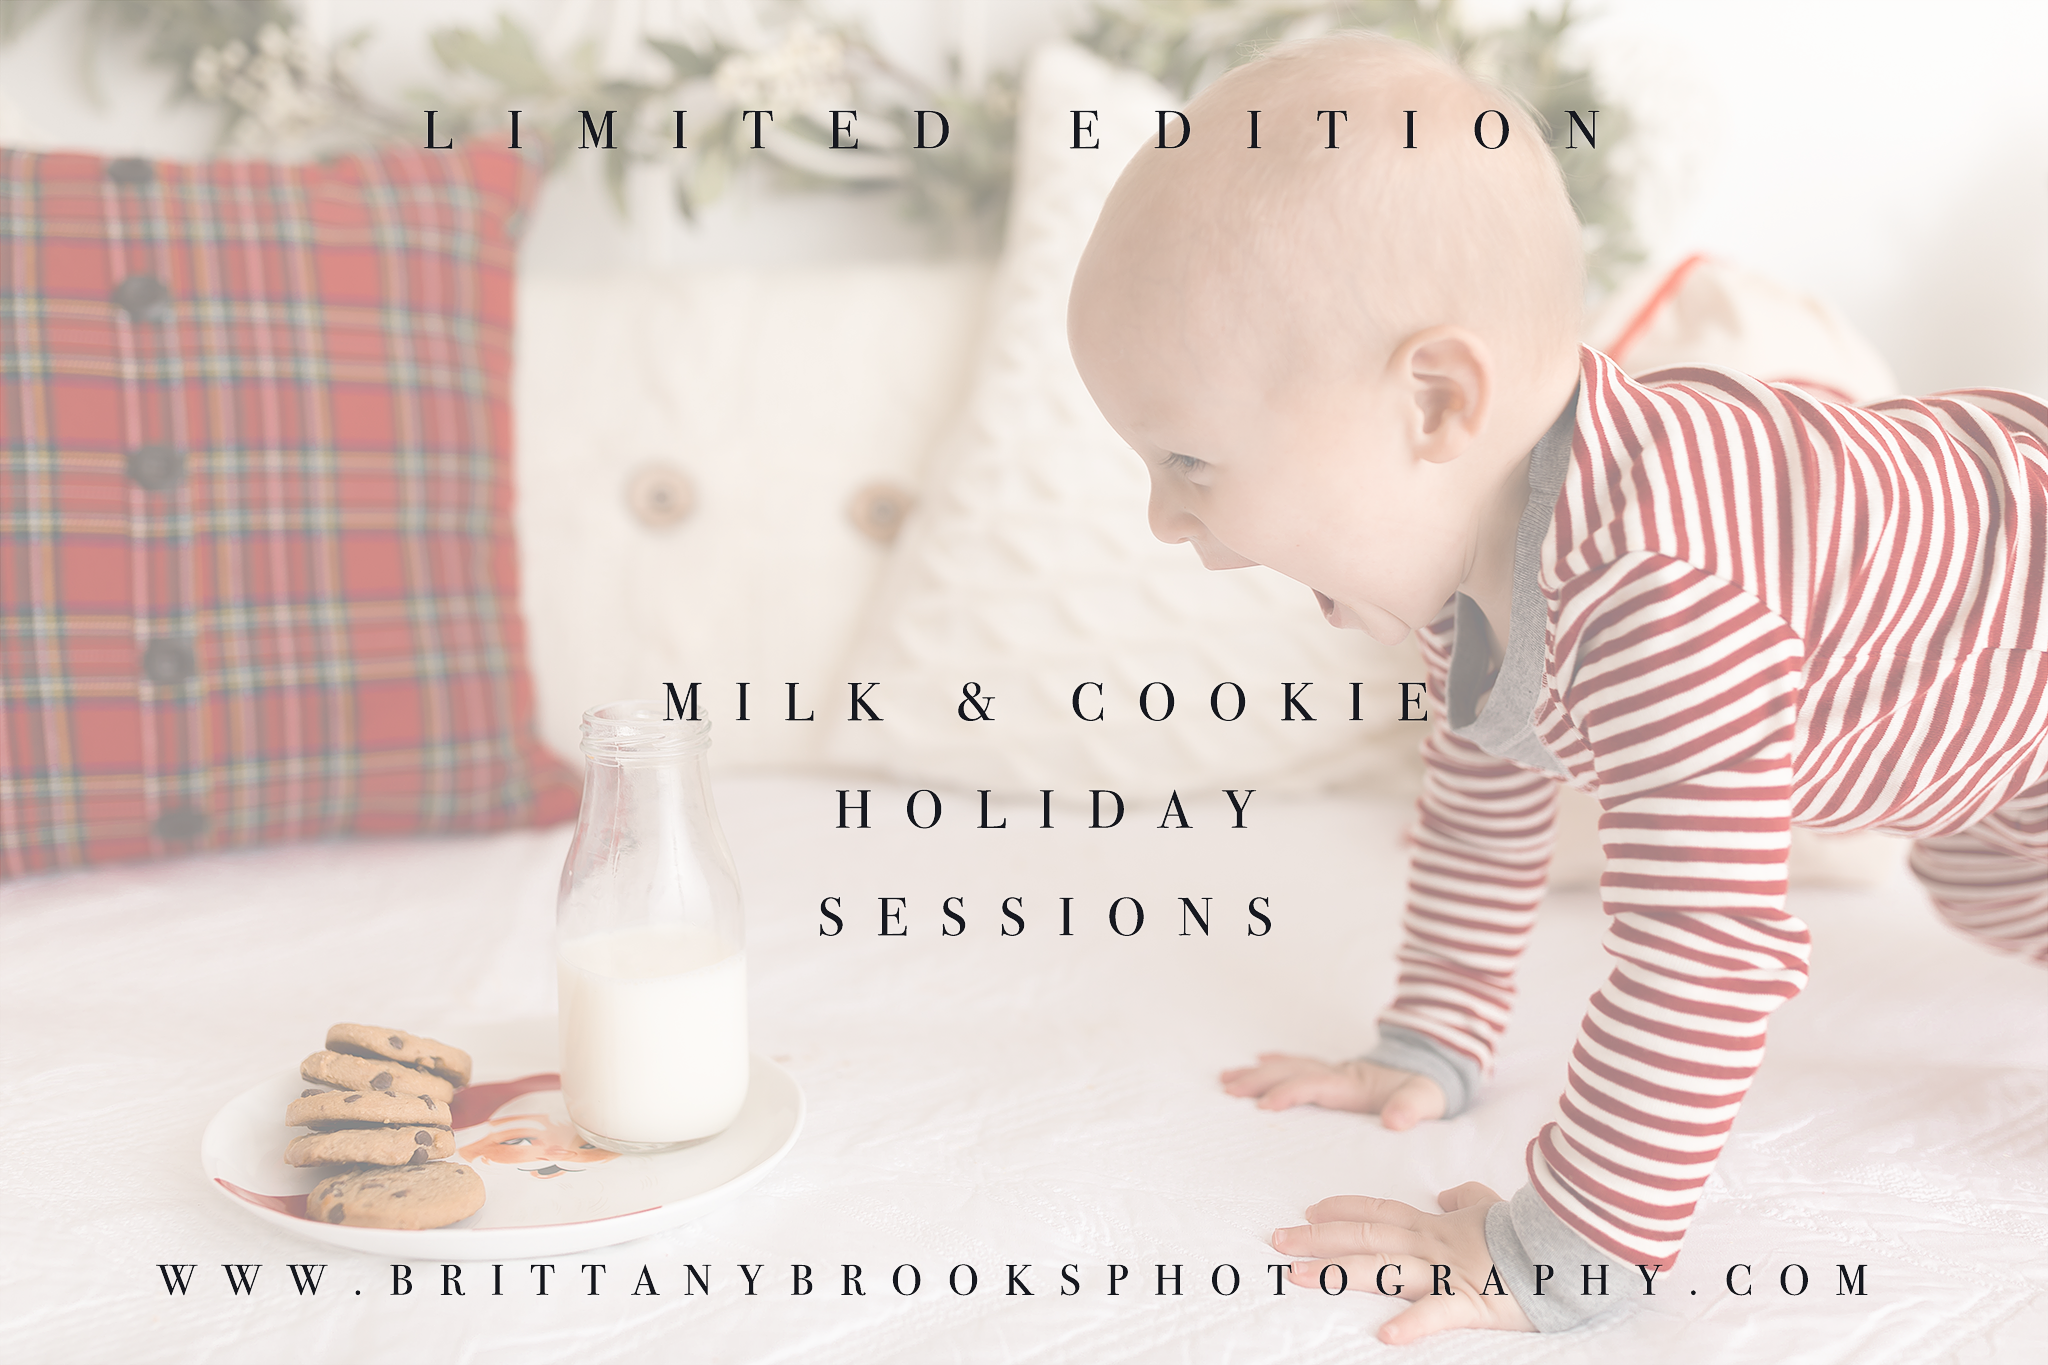 san-antonio-christmas-sessions-holiday-sessions-cookie-and-milk-mini-session